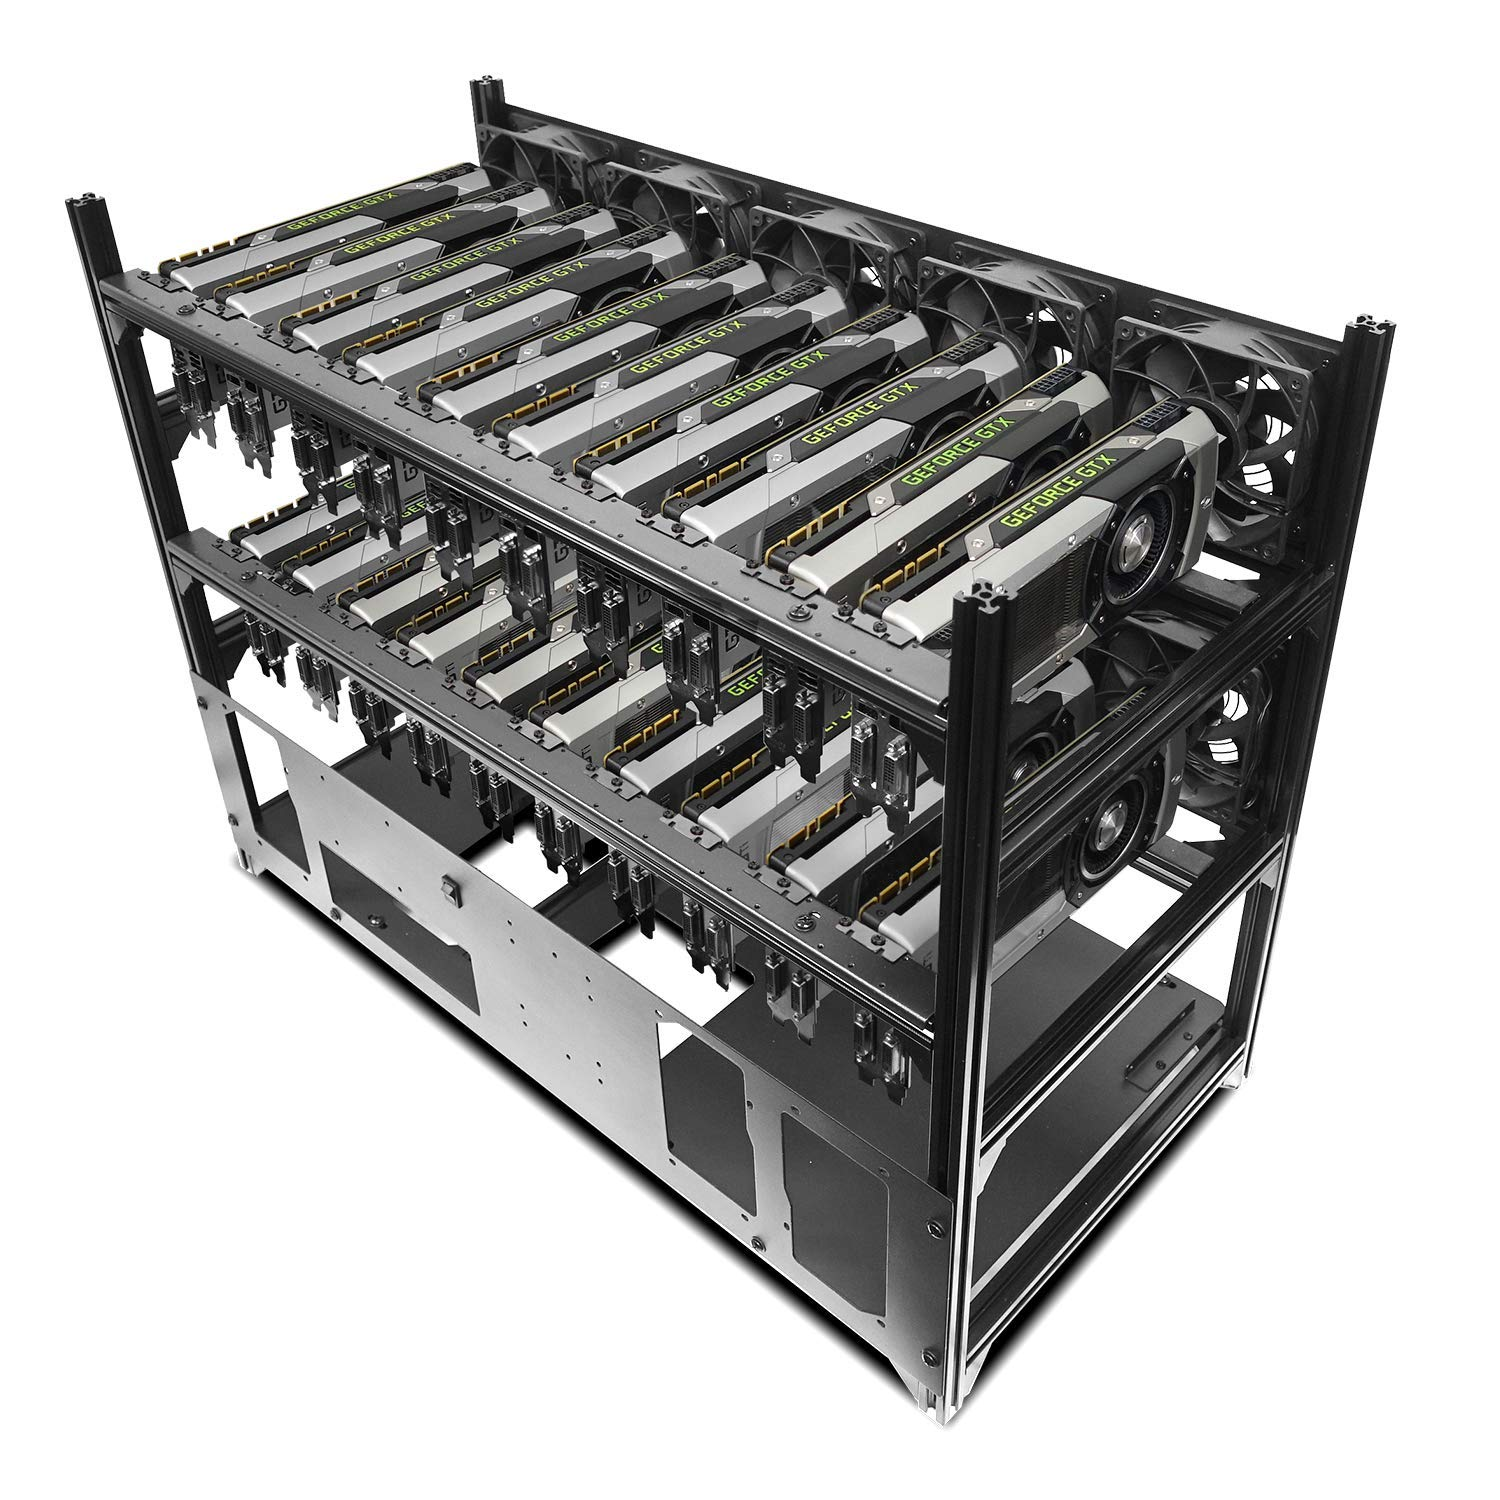 Hydra V Rev  B 20 GPU Frame Rack for Learning/Mining/Rendering Servers,  E-ATX and 5 PSU Ready